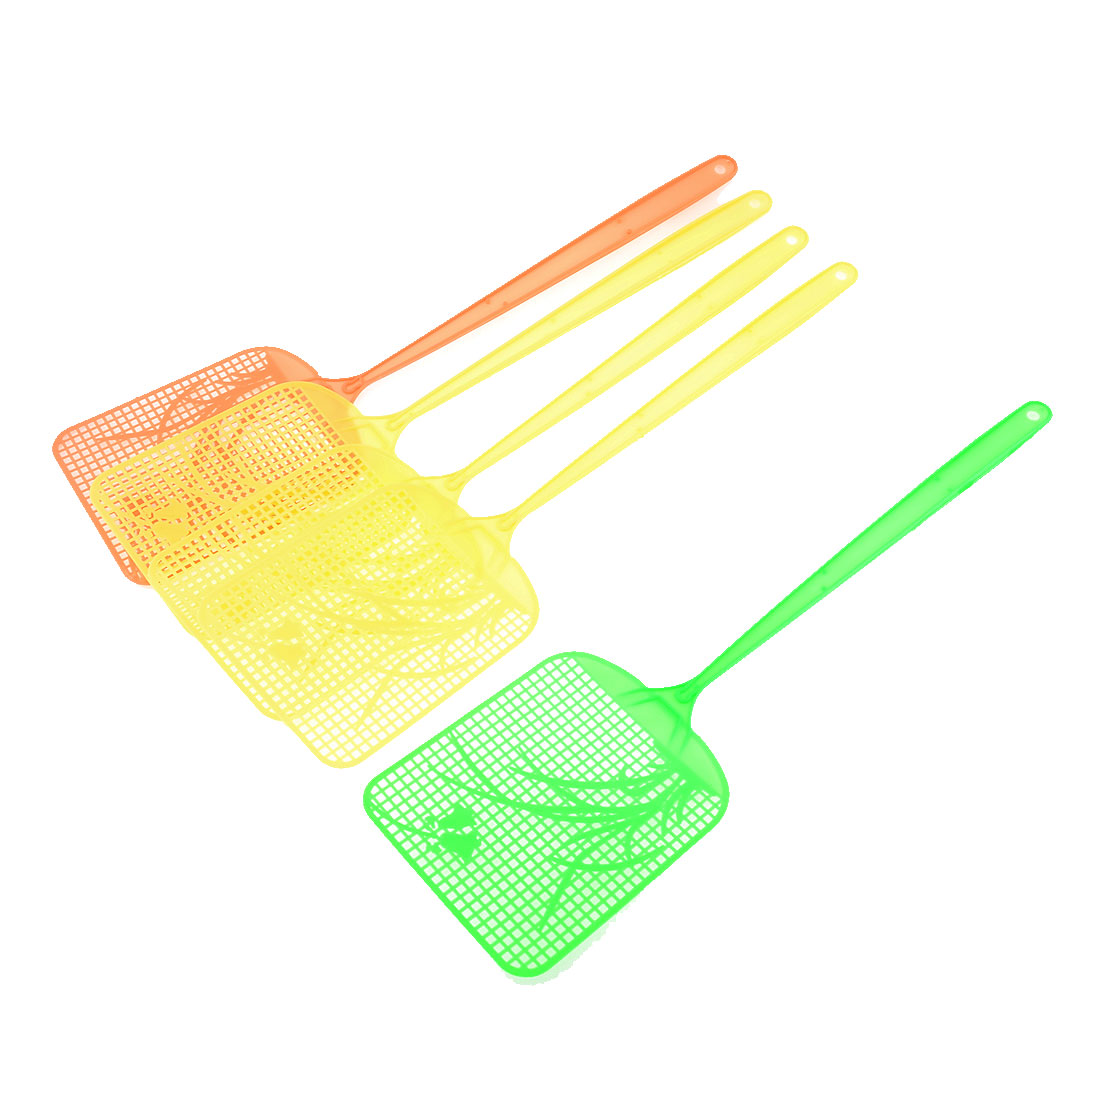 5 Pcs Tricolor Plastic Long Handle Mosquito Cockroach Tool Fly Swatter